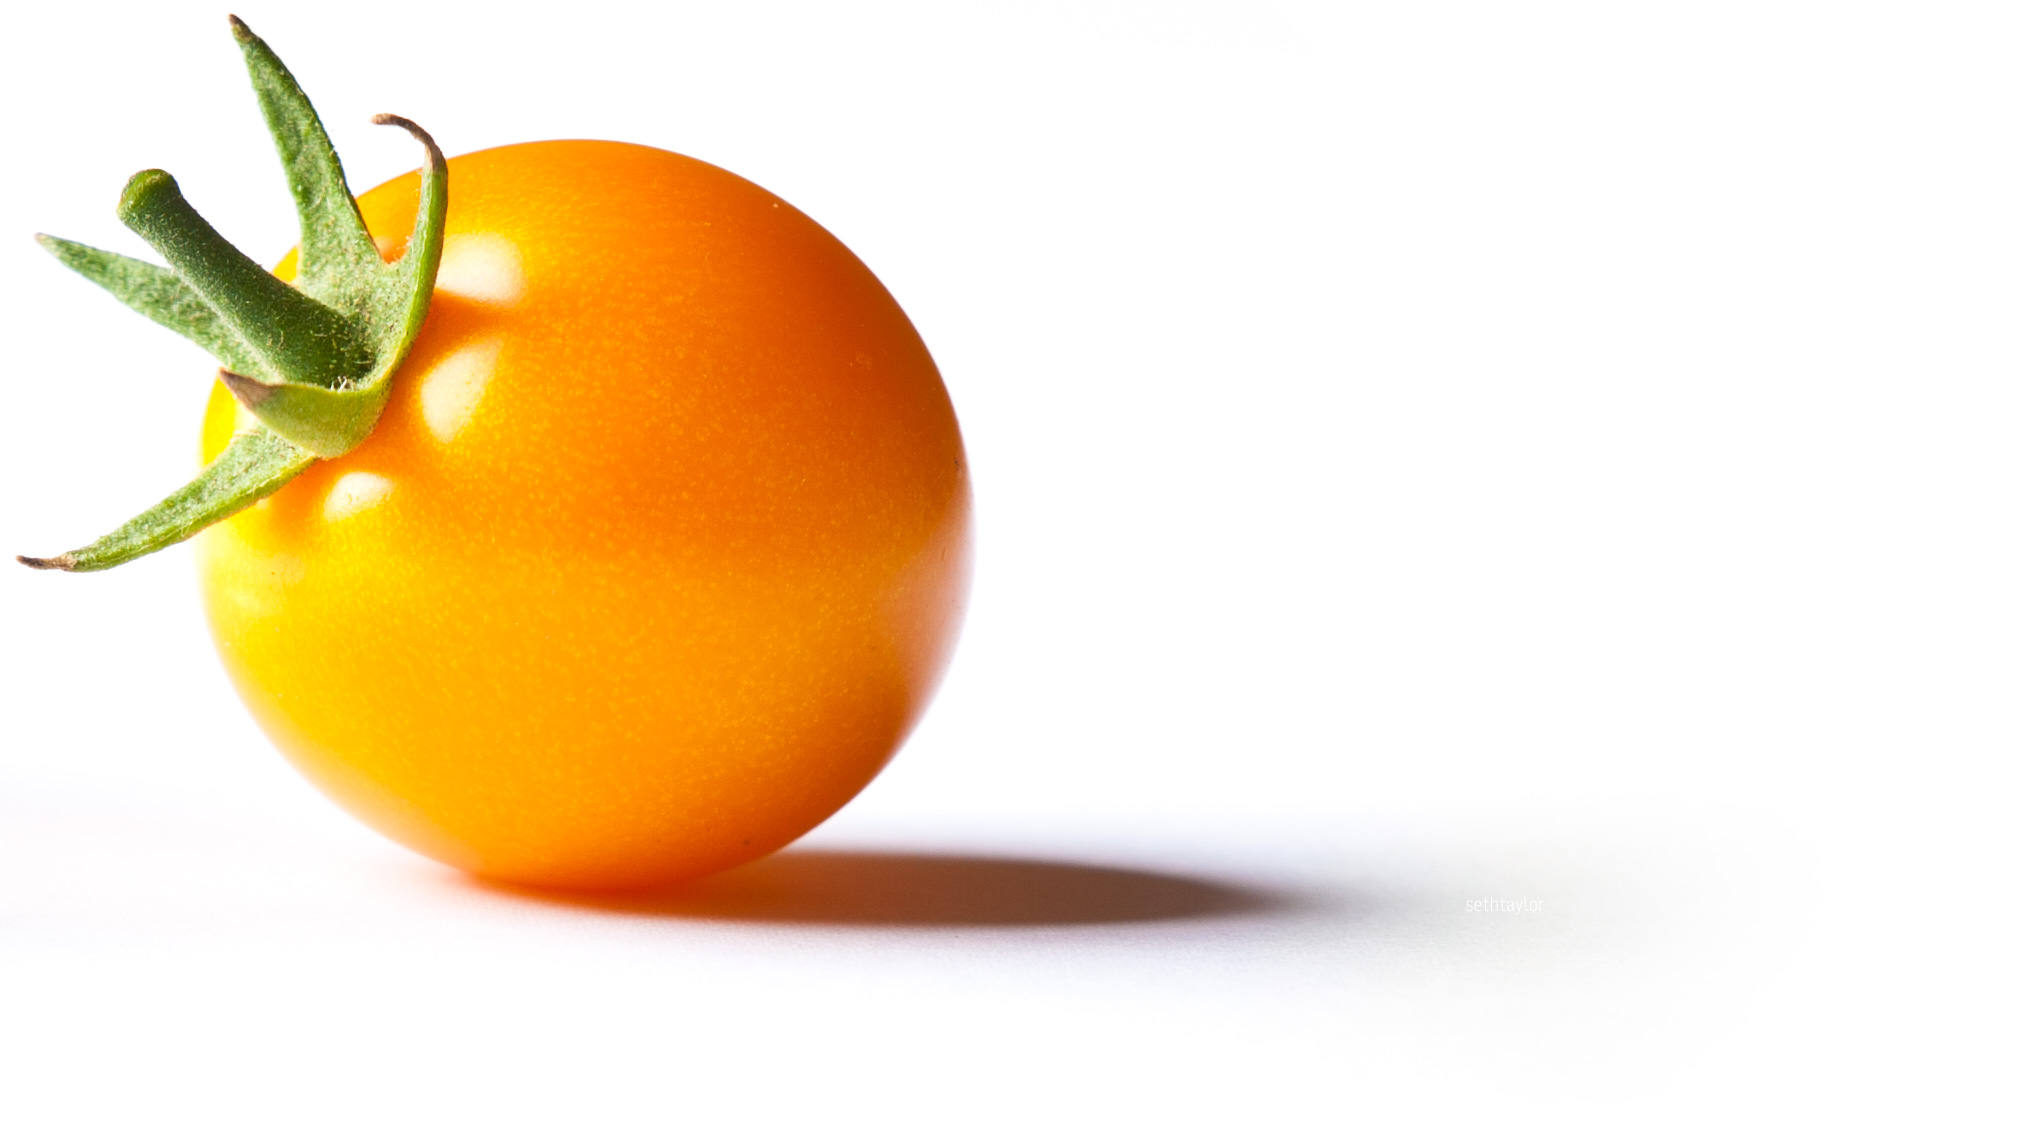 sunglow tomato - free to use image